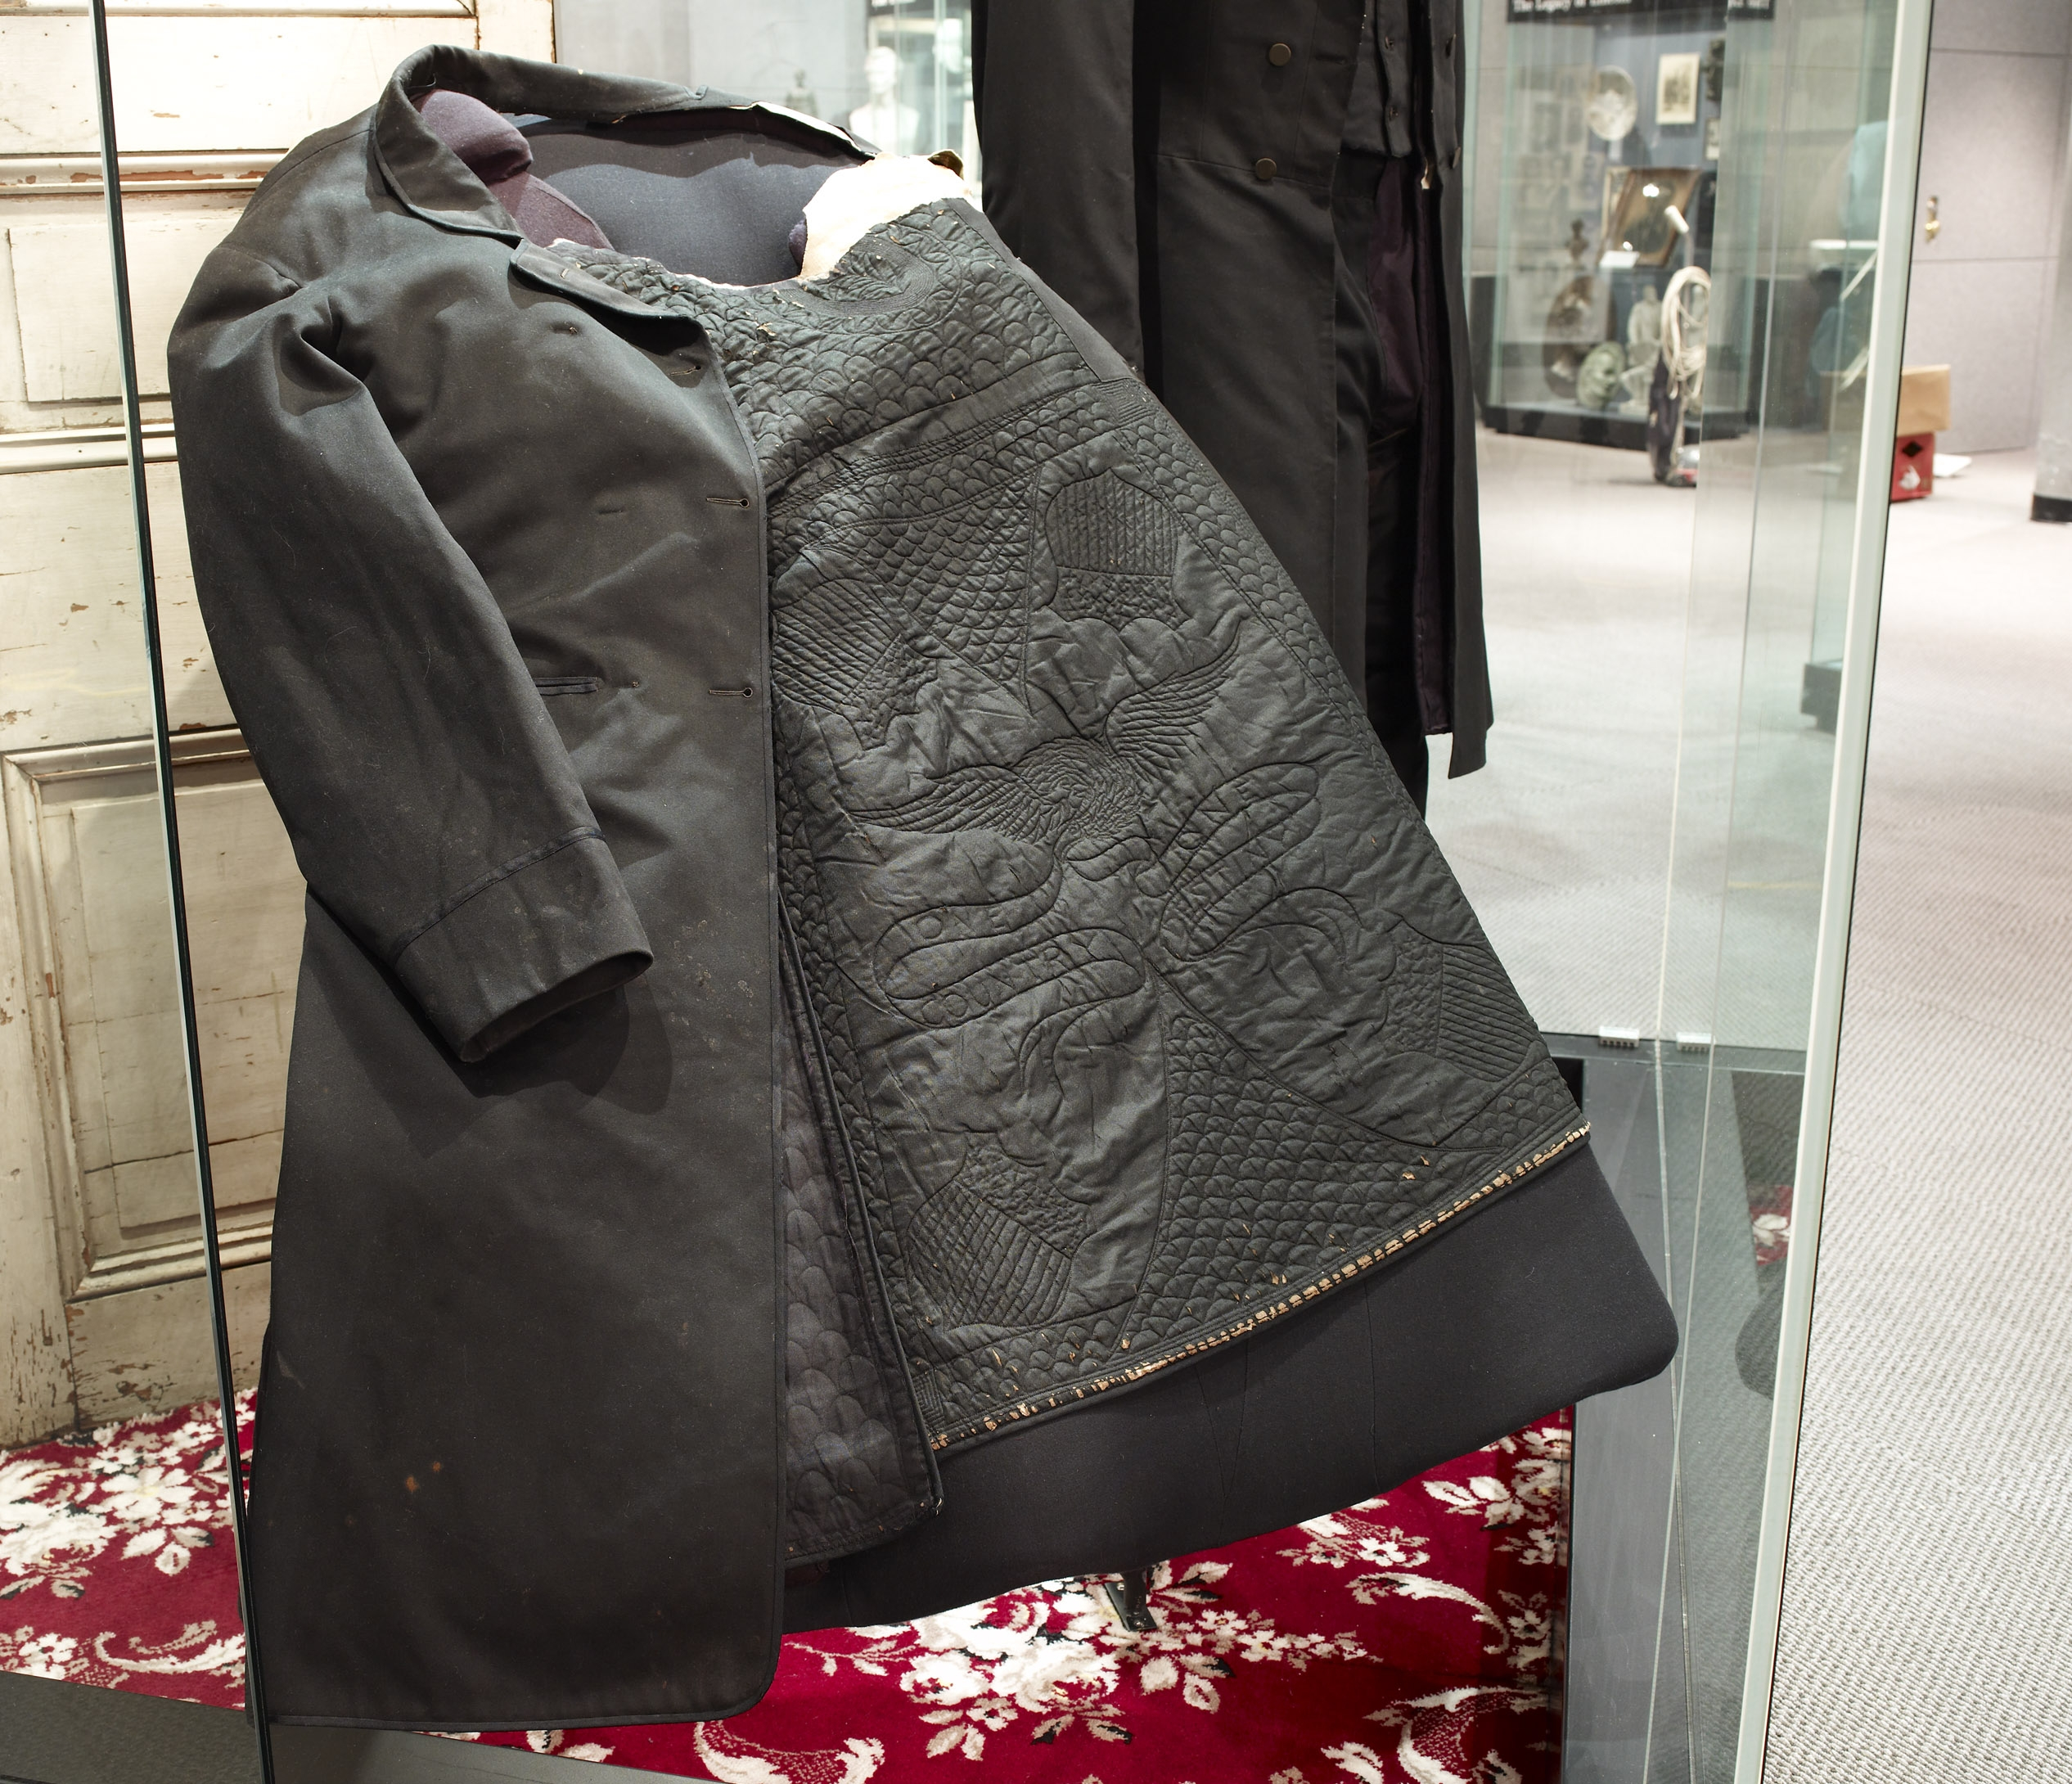 Museum case displays Lincoln's Frock Coat.